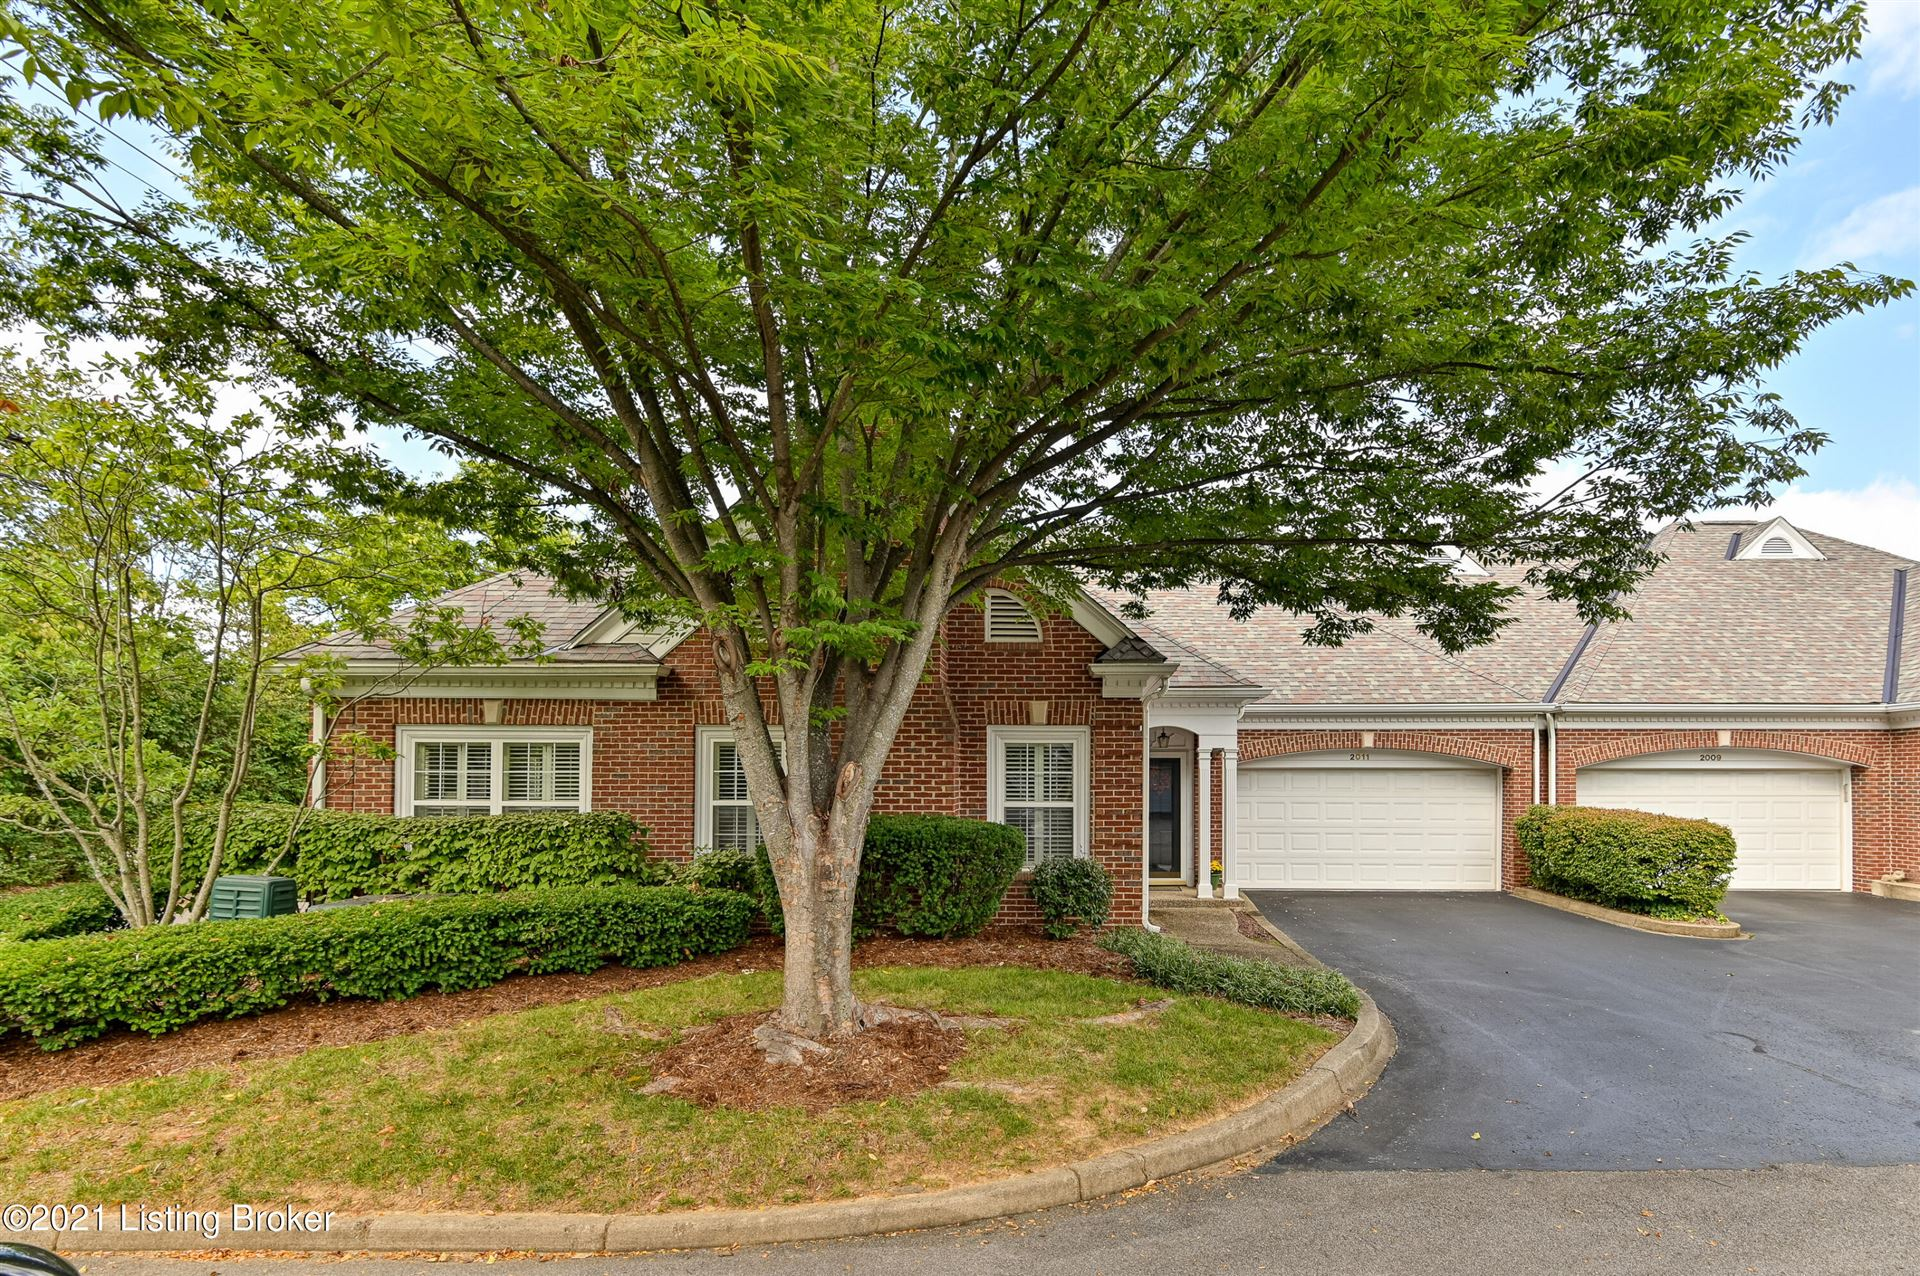 Photo for 2011 Winding Bluff Trace, Louisville, KY 40207 (MLS # 1598543)